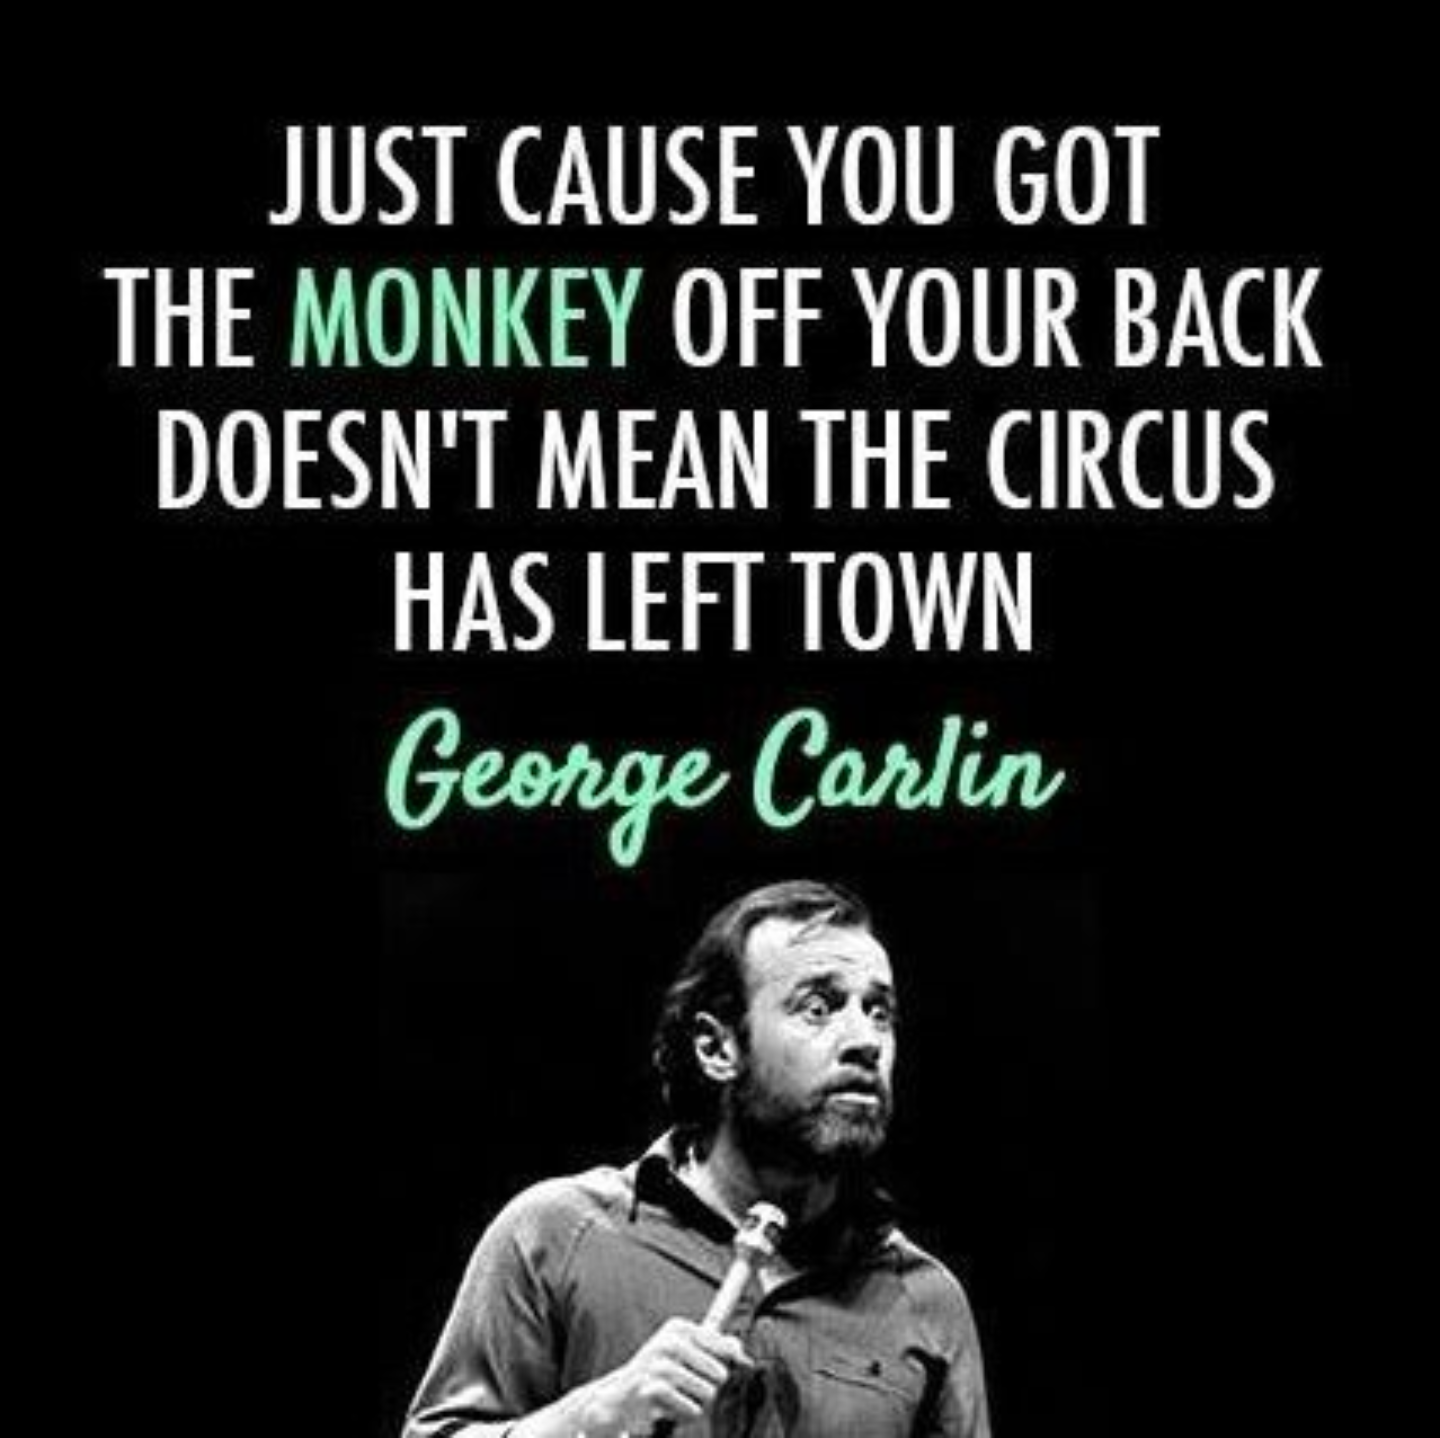 Just cause you got the monkey off your back, it doesn't mean the circus has left town